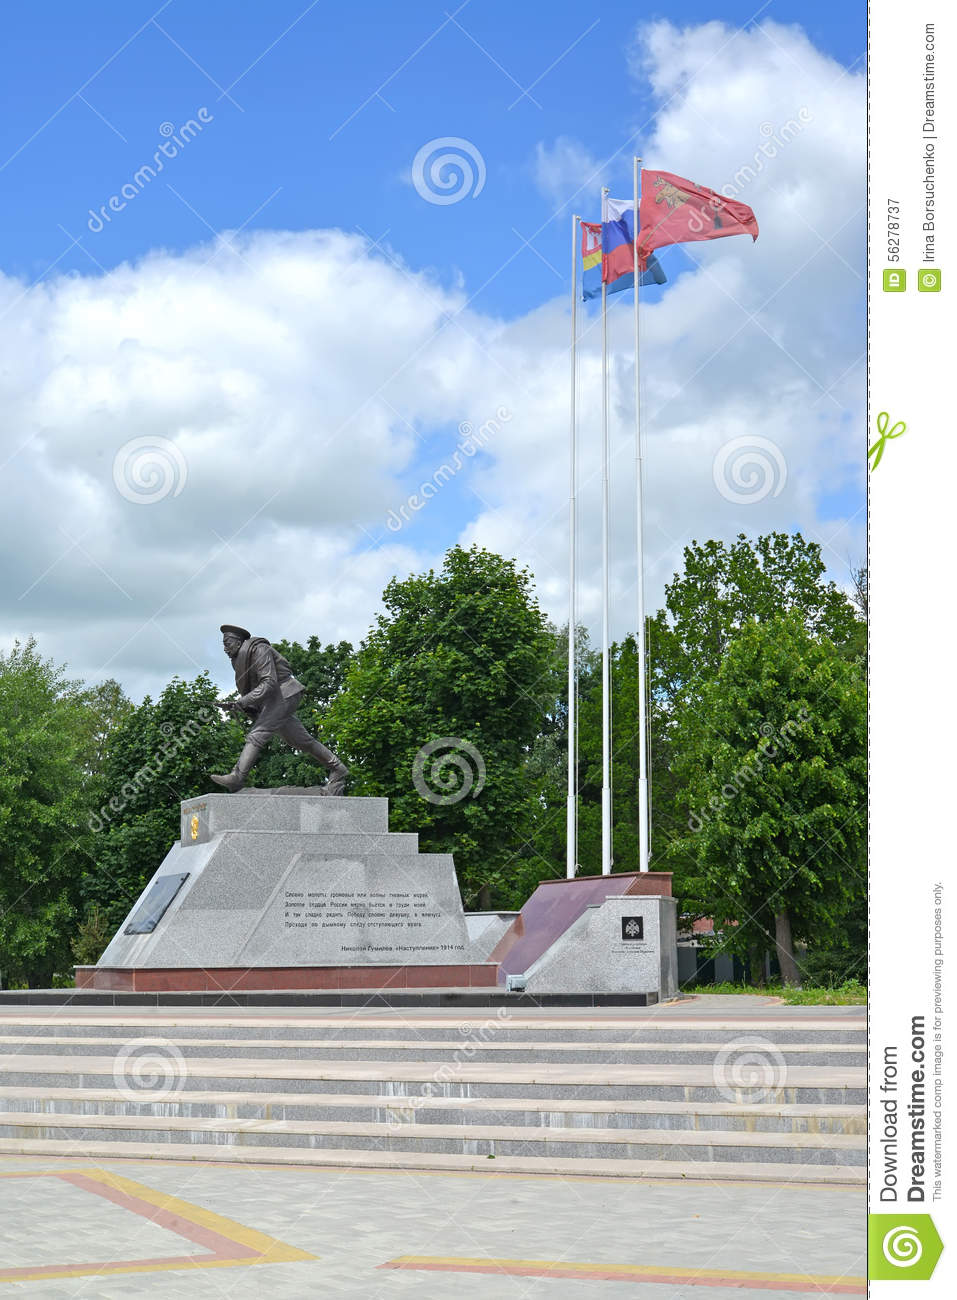 Memorial complex of history of World War I (monument Bayonet attack)